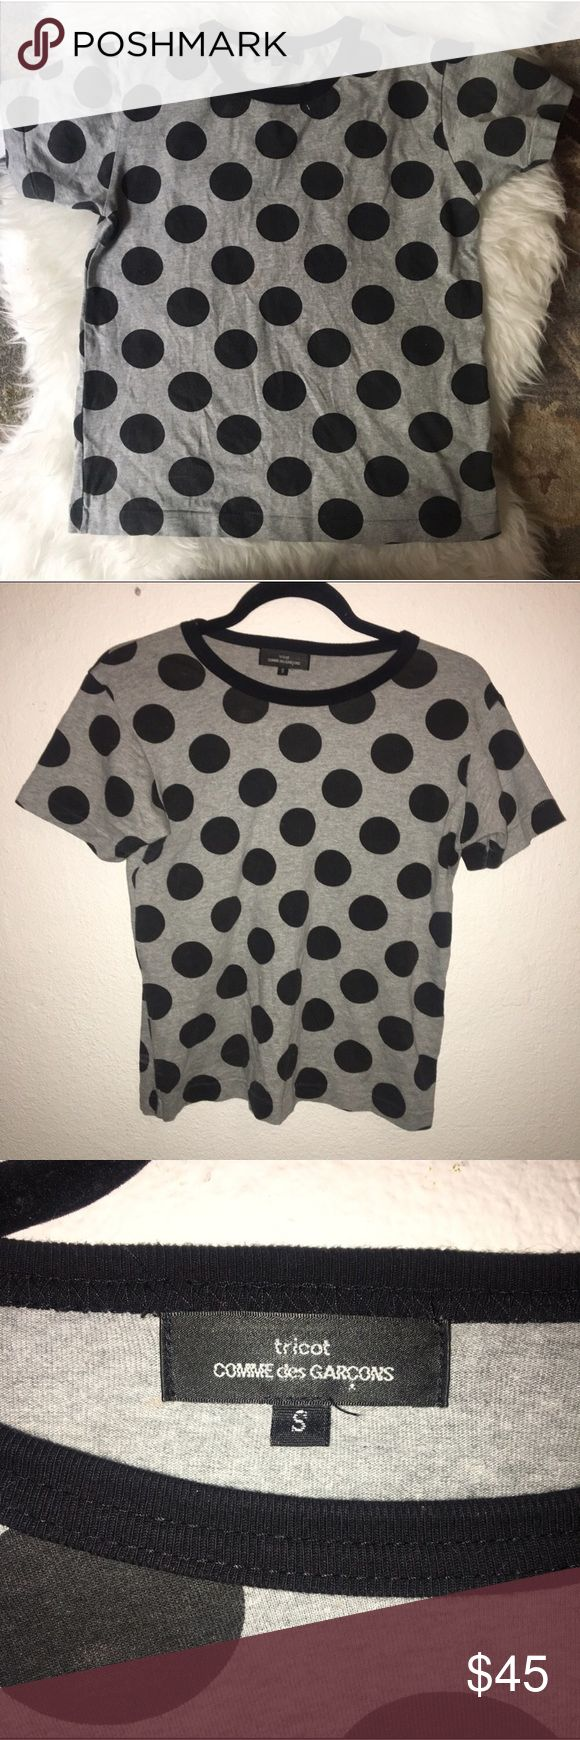 🎀COMME DES GARÇON TRICOT polka dot tee shirt🎀 authentic. worn once or twice, perfect condition. size small. grey with black polka dots. please note the fabric content tag (on the inside) has been cut out. Comme des Garcons Tops Tees - Short Sleeve